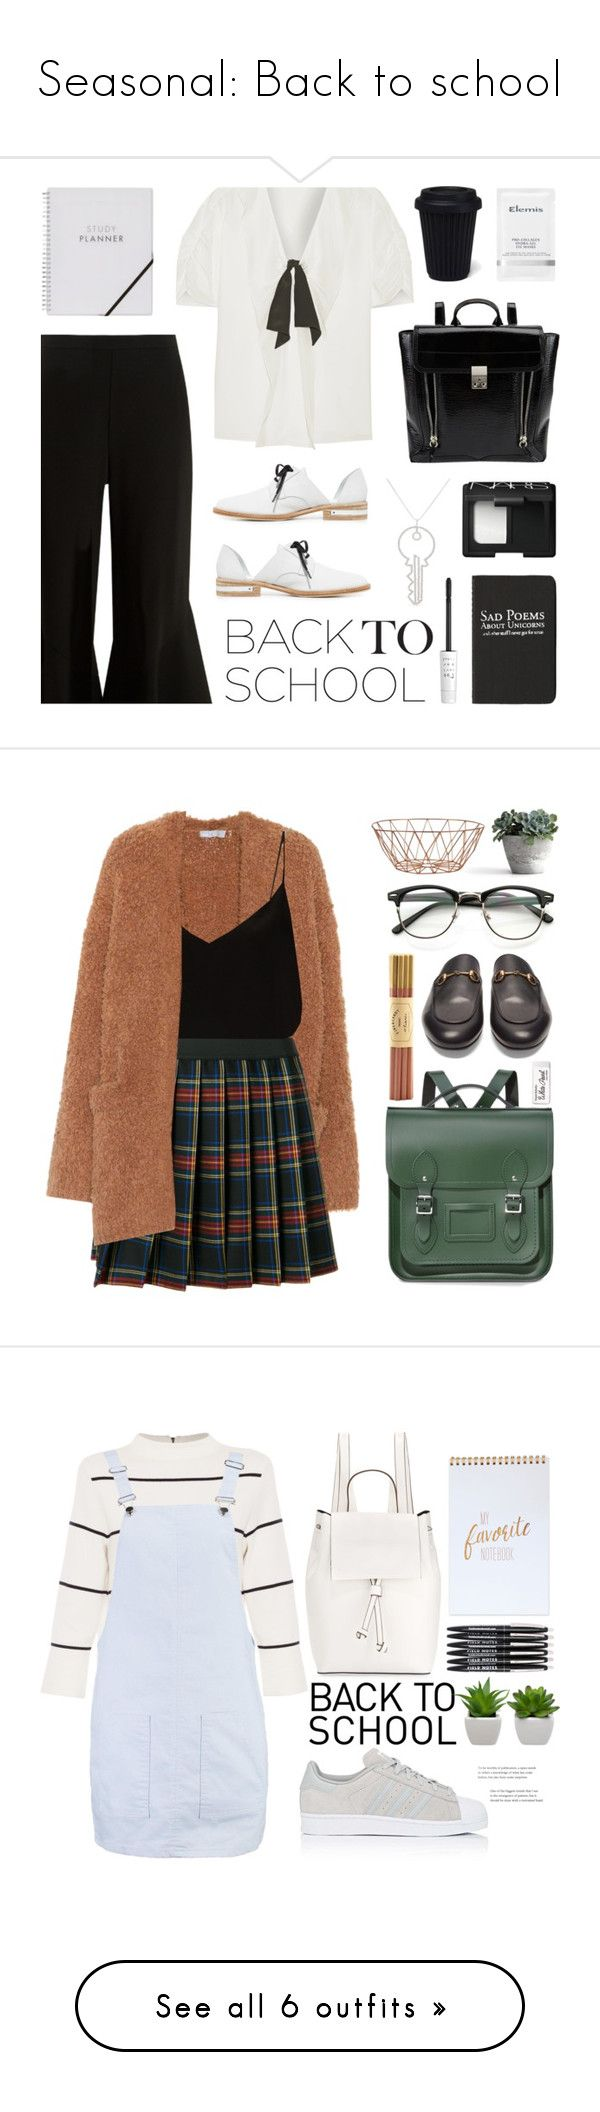 """Seasonal: Back to school"" by rmarie2001 ❤ liked on Polyvore featuring Miu Miu, Peter Pilotto, Freda Salvador, 3.1 Phillip Lim, Moleskine, Elemis, NARS Cosmetics, Art School, too cool for school and BackToSchool"